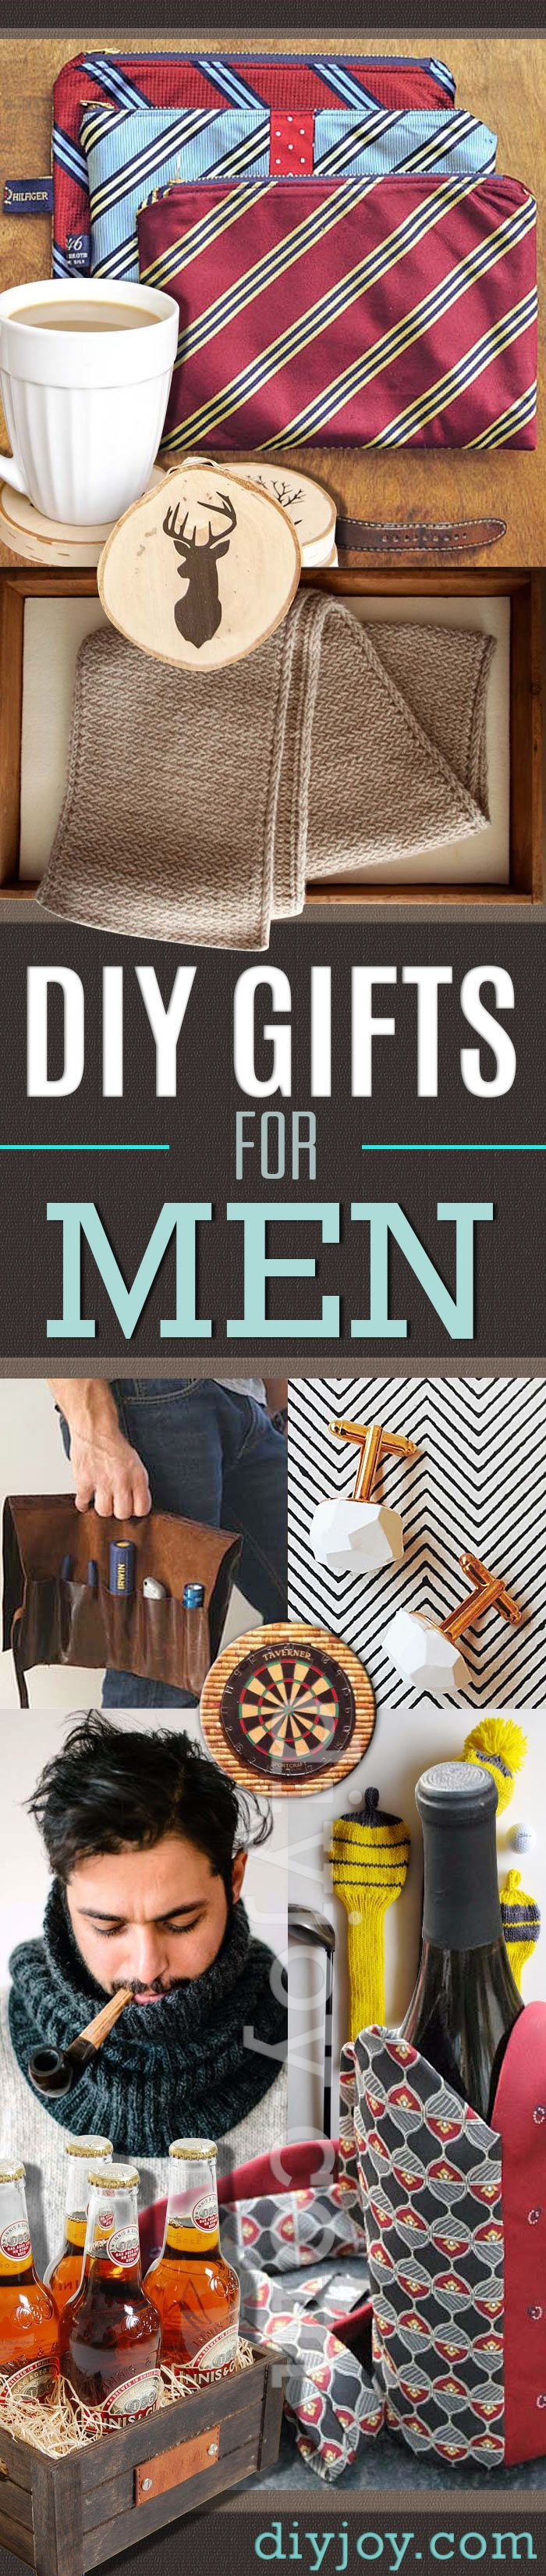 Best DIY Gifts for Men and Homemade Craft Ideas for Boyfriend, Dad, Brother, Father and Husband, Uncle, Boss  http://diyjoy.com/diy-gifts-for-men-pinterest